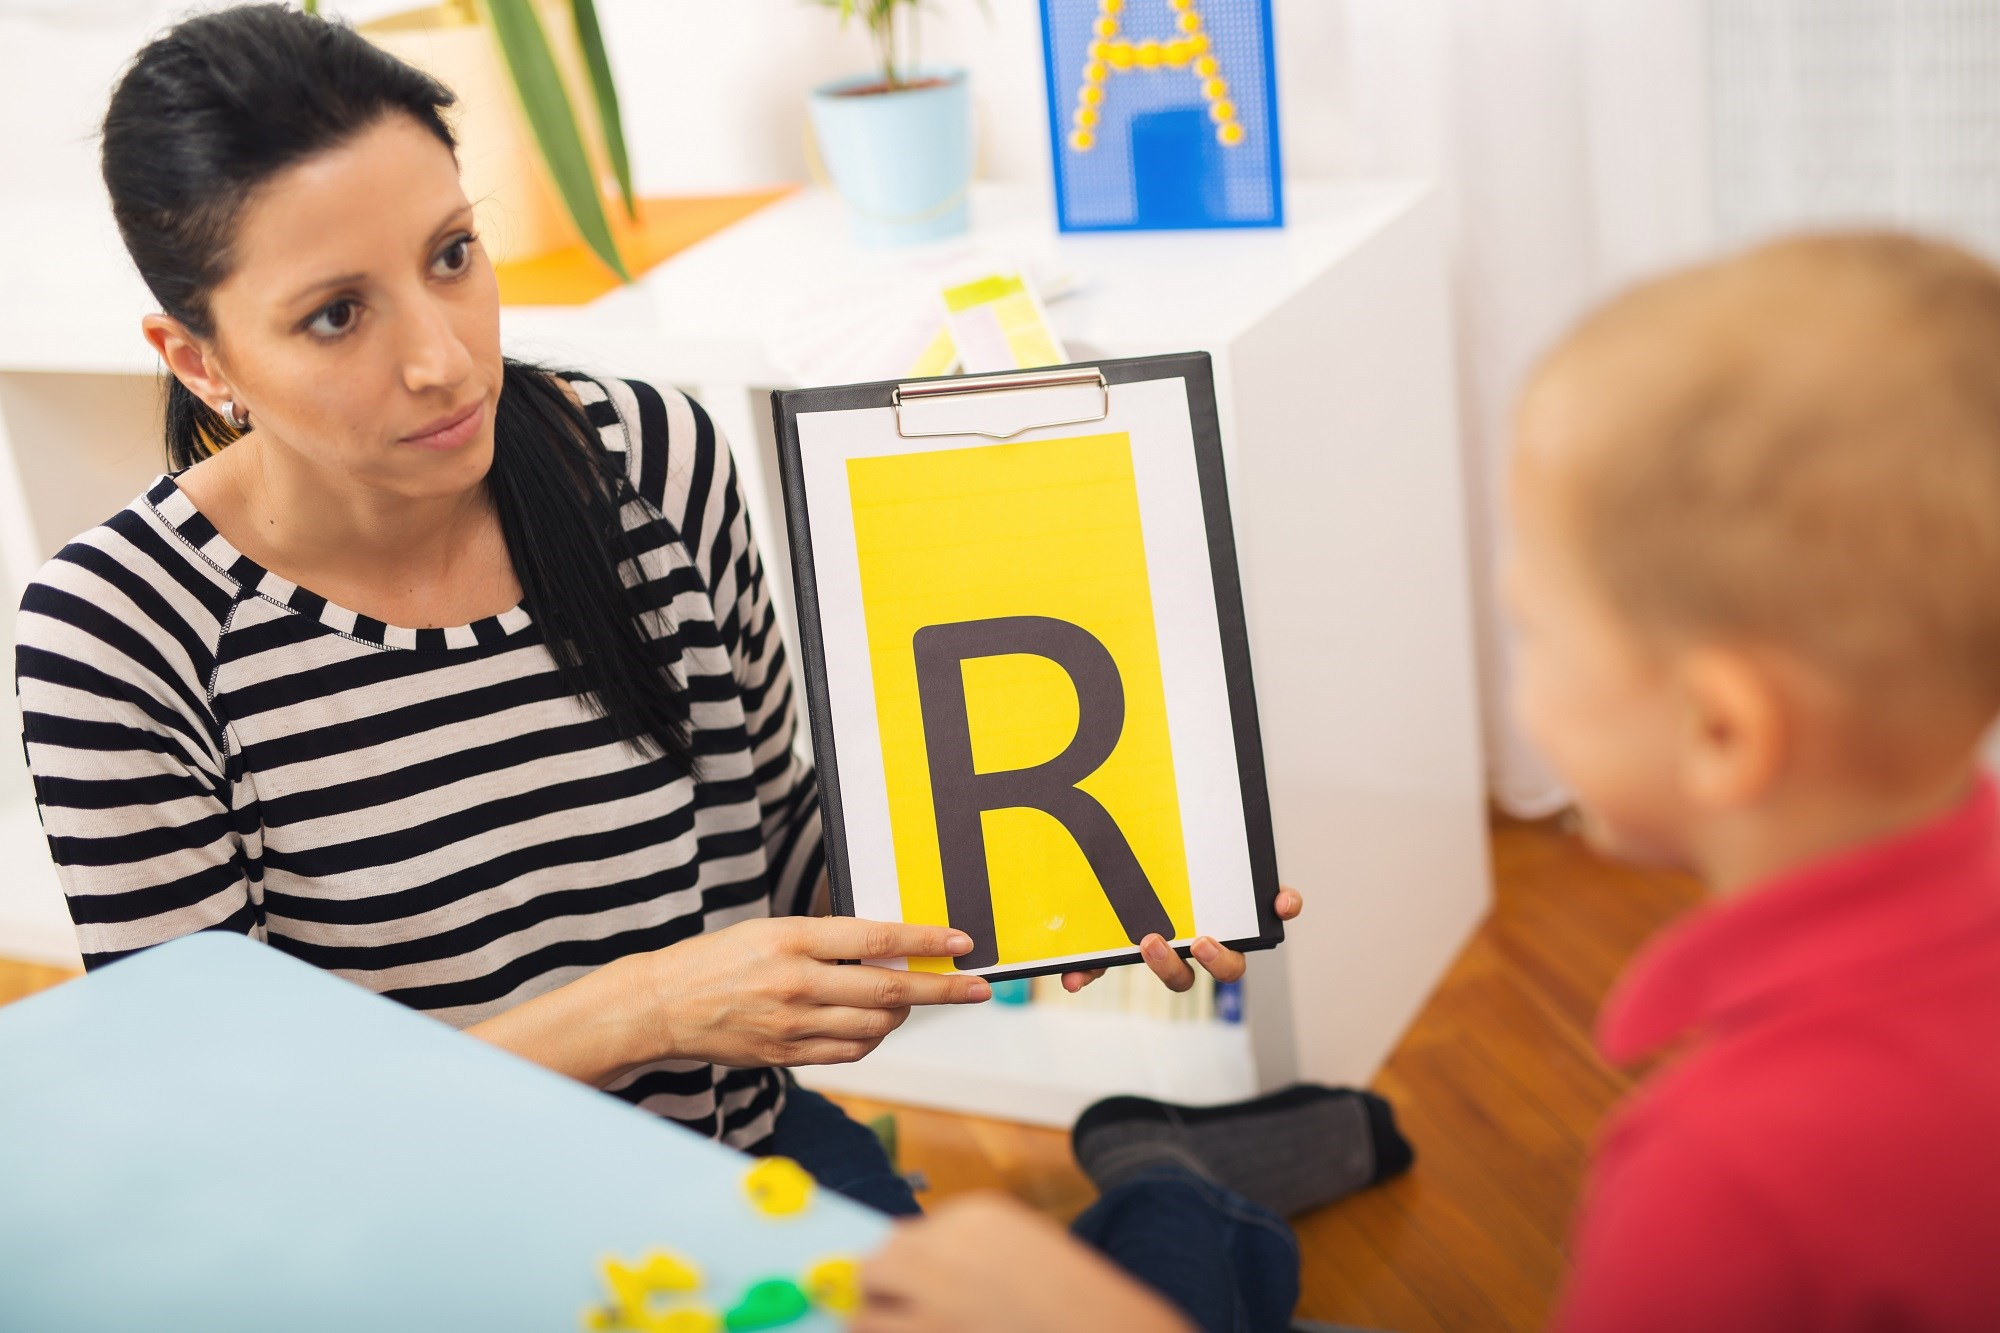 Understanding the course of autism symptoms over a period of years could help clinicians diagnose cases after early childhood.